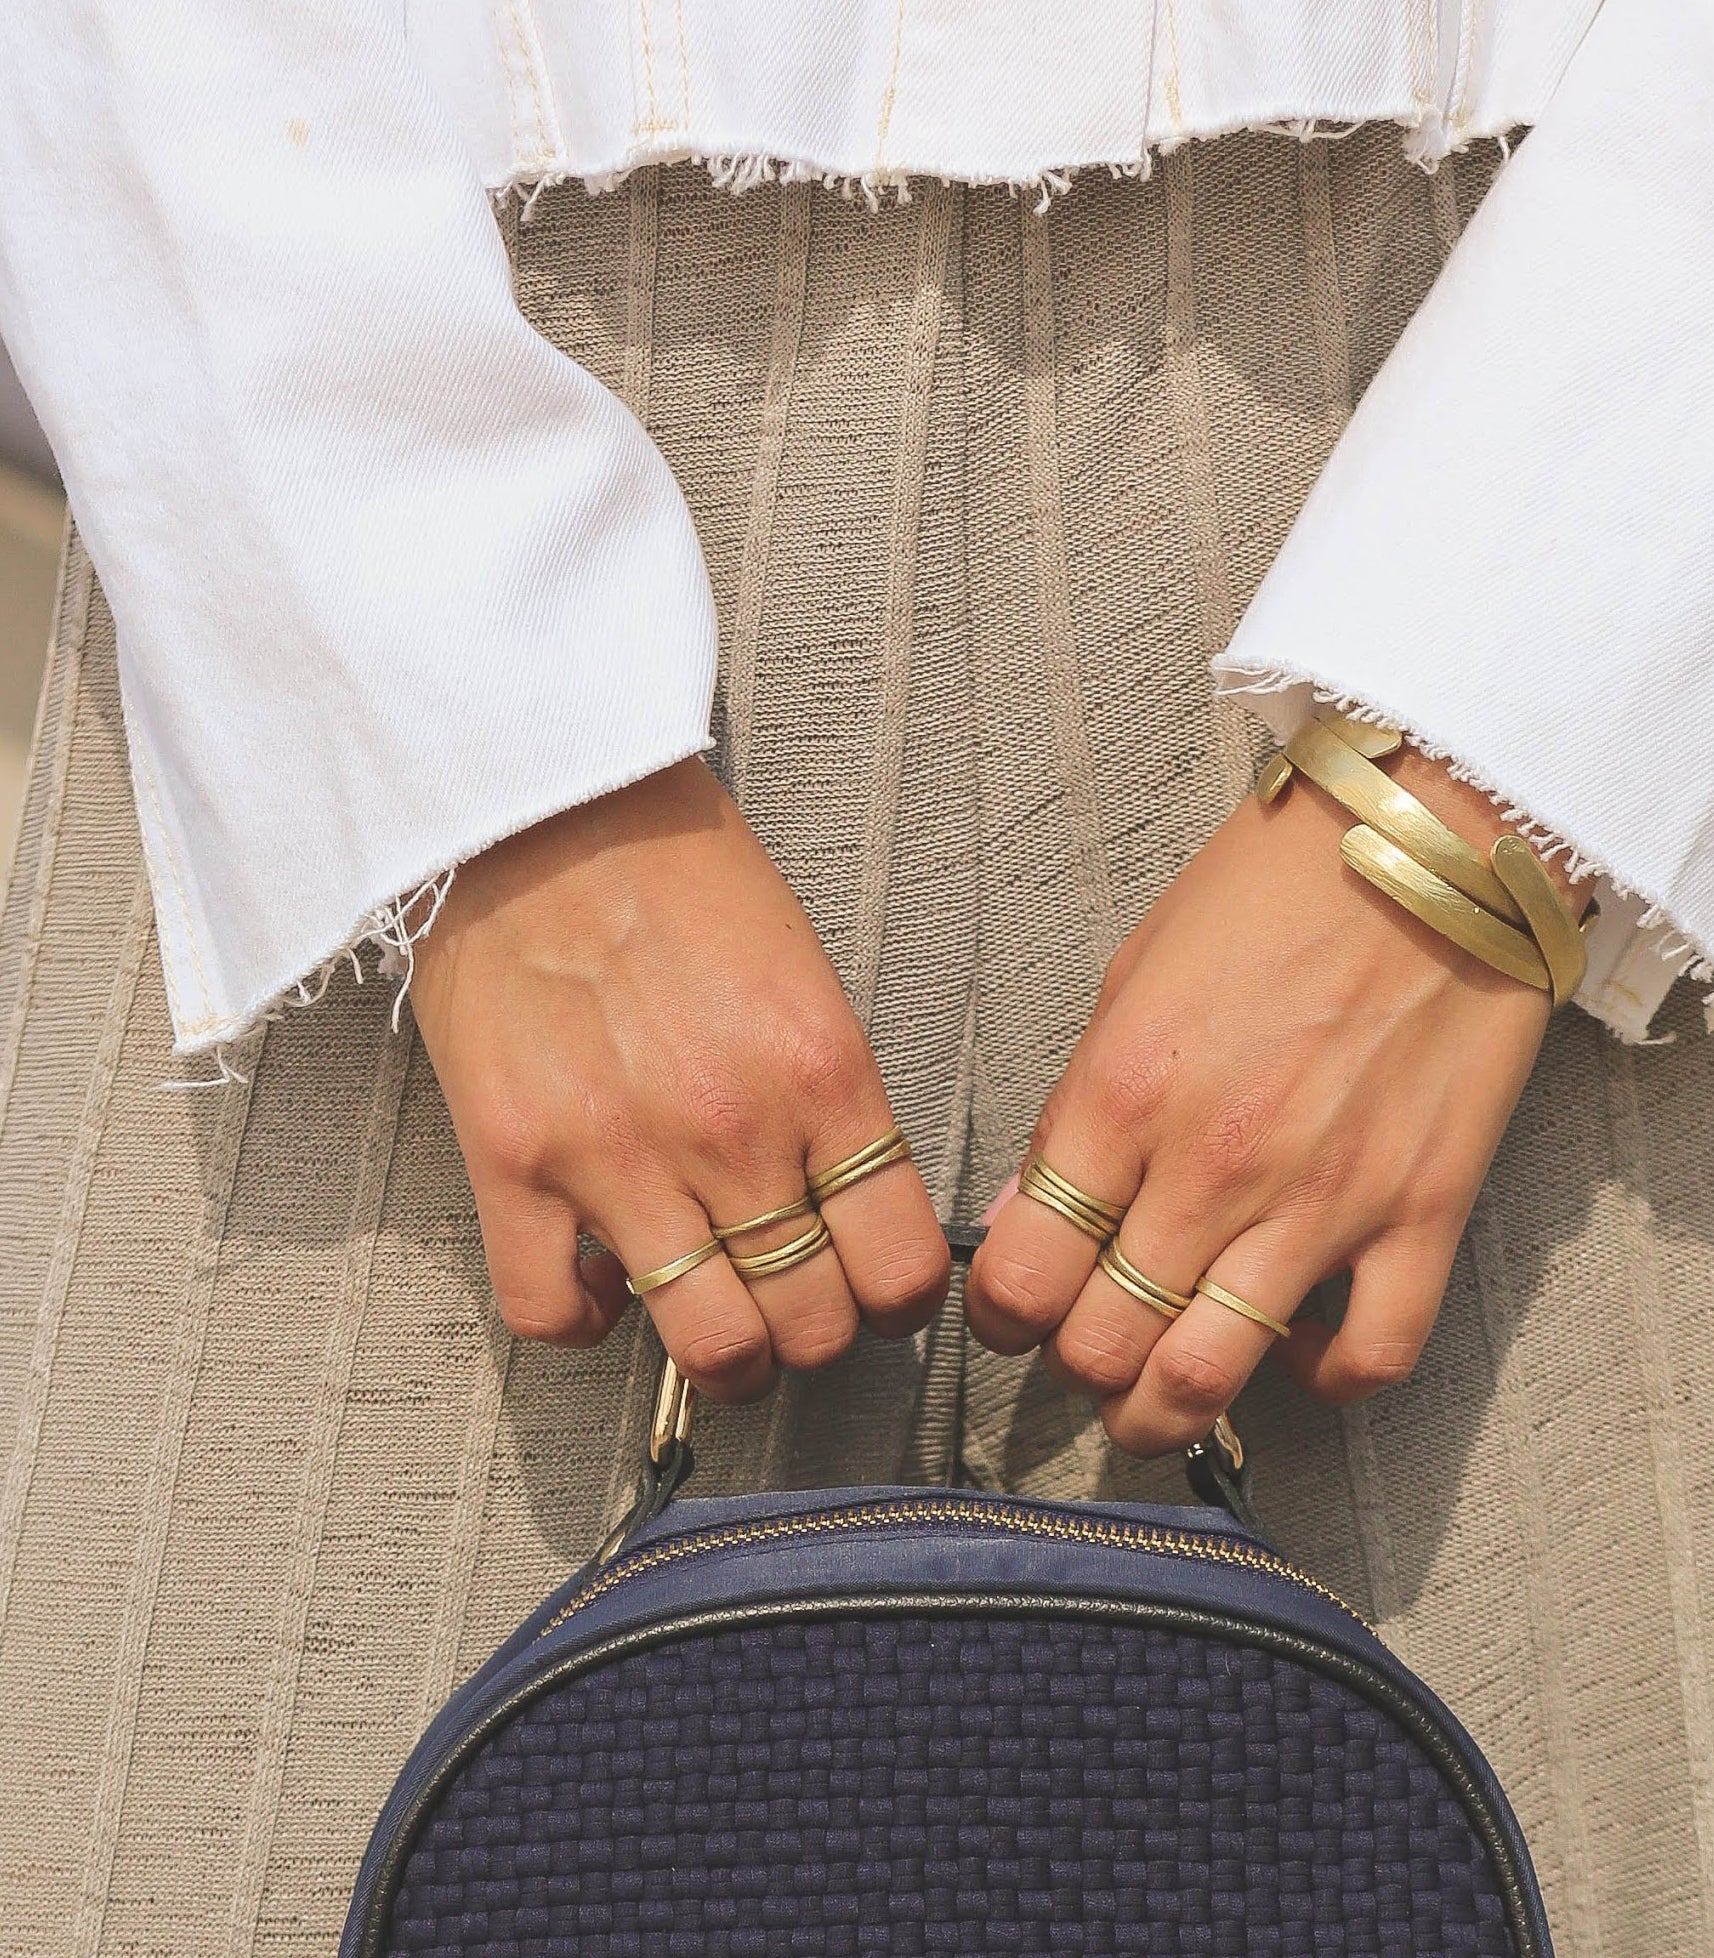 Thicc Brass Bangle from NAWA with rings and a bag